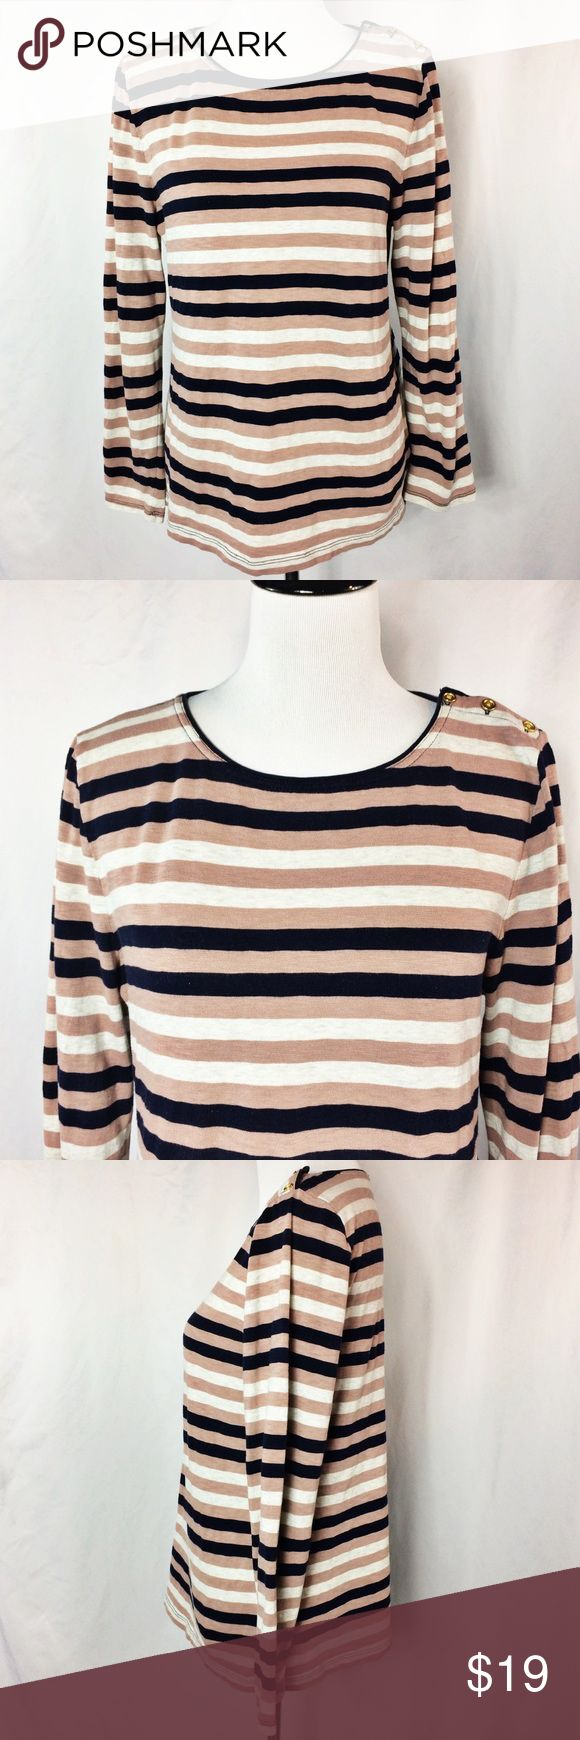 "J. Crew Striped Long Sleeve Top w Button Detail Cute and comfortable cotton long sleeve top with navy blue, gray and mauve stripes. Gold button accent at left shoulder.  Bust ~38"" Sleeve 22"" Length ~25""  100% Cotton  Thank you for looking!  May require pressing or steaming upon arrival J. Crew Tops Tees - Long Sleeve"